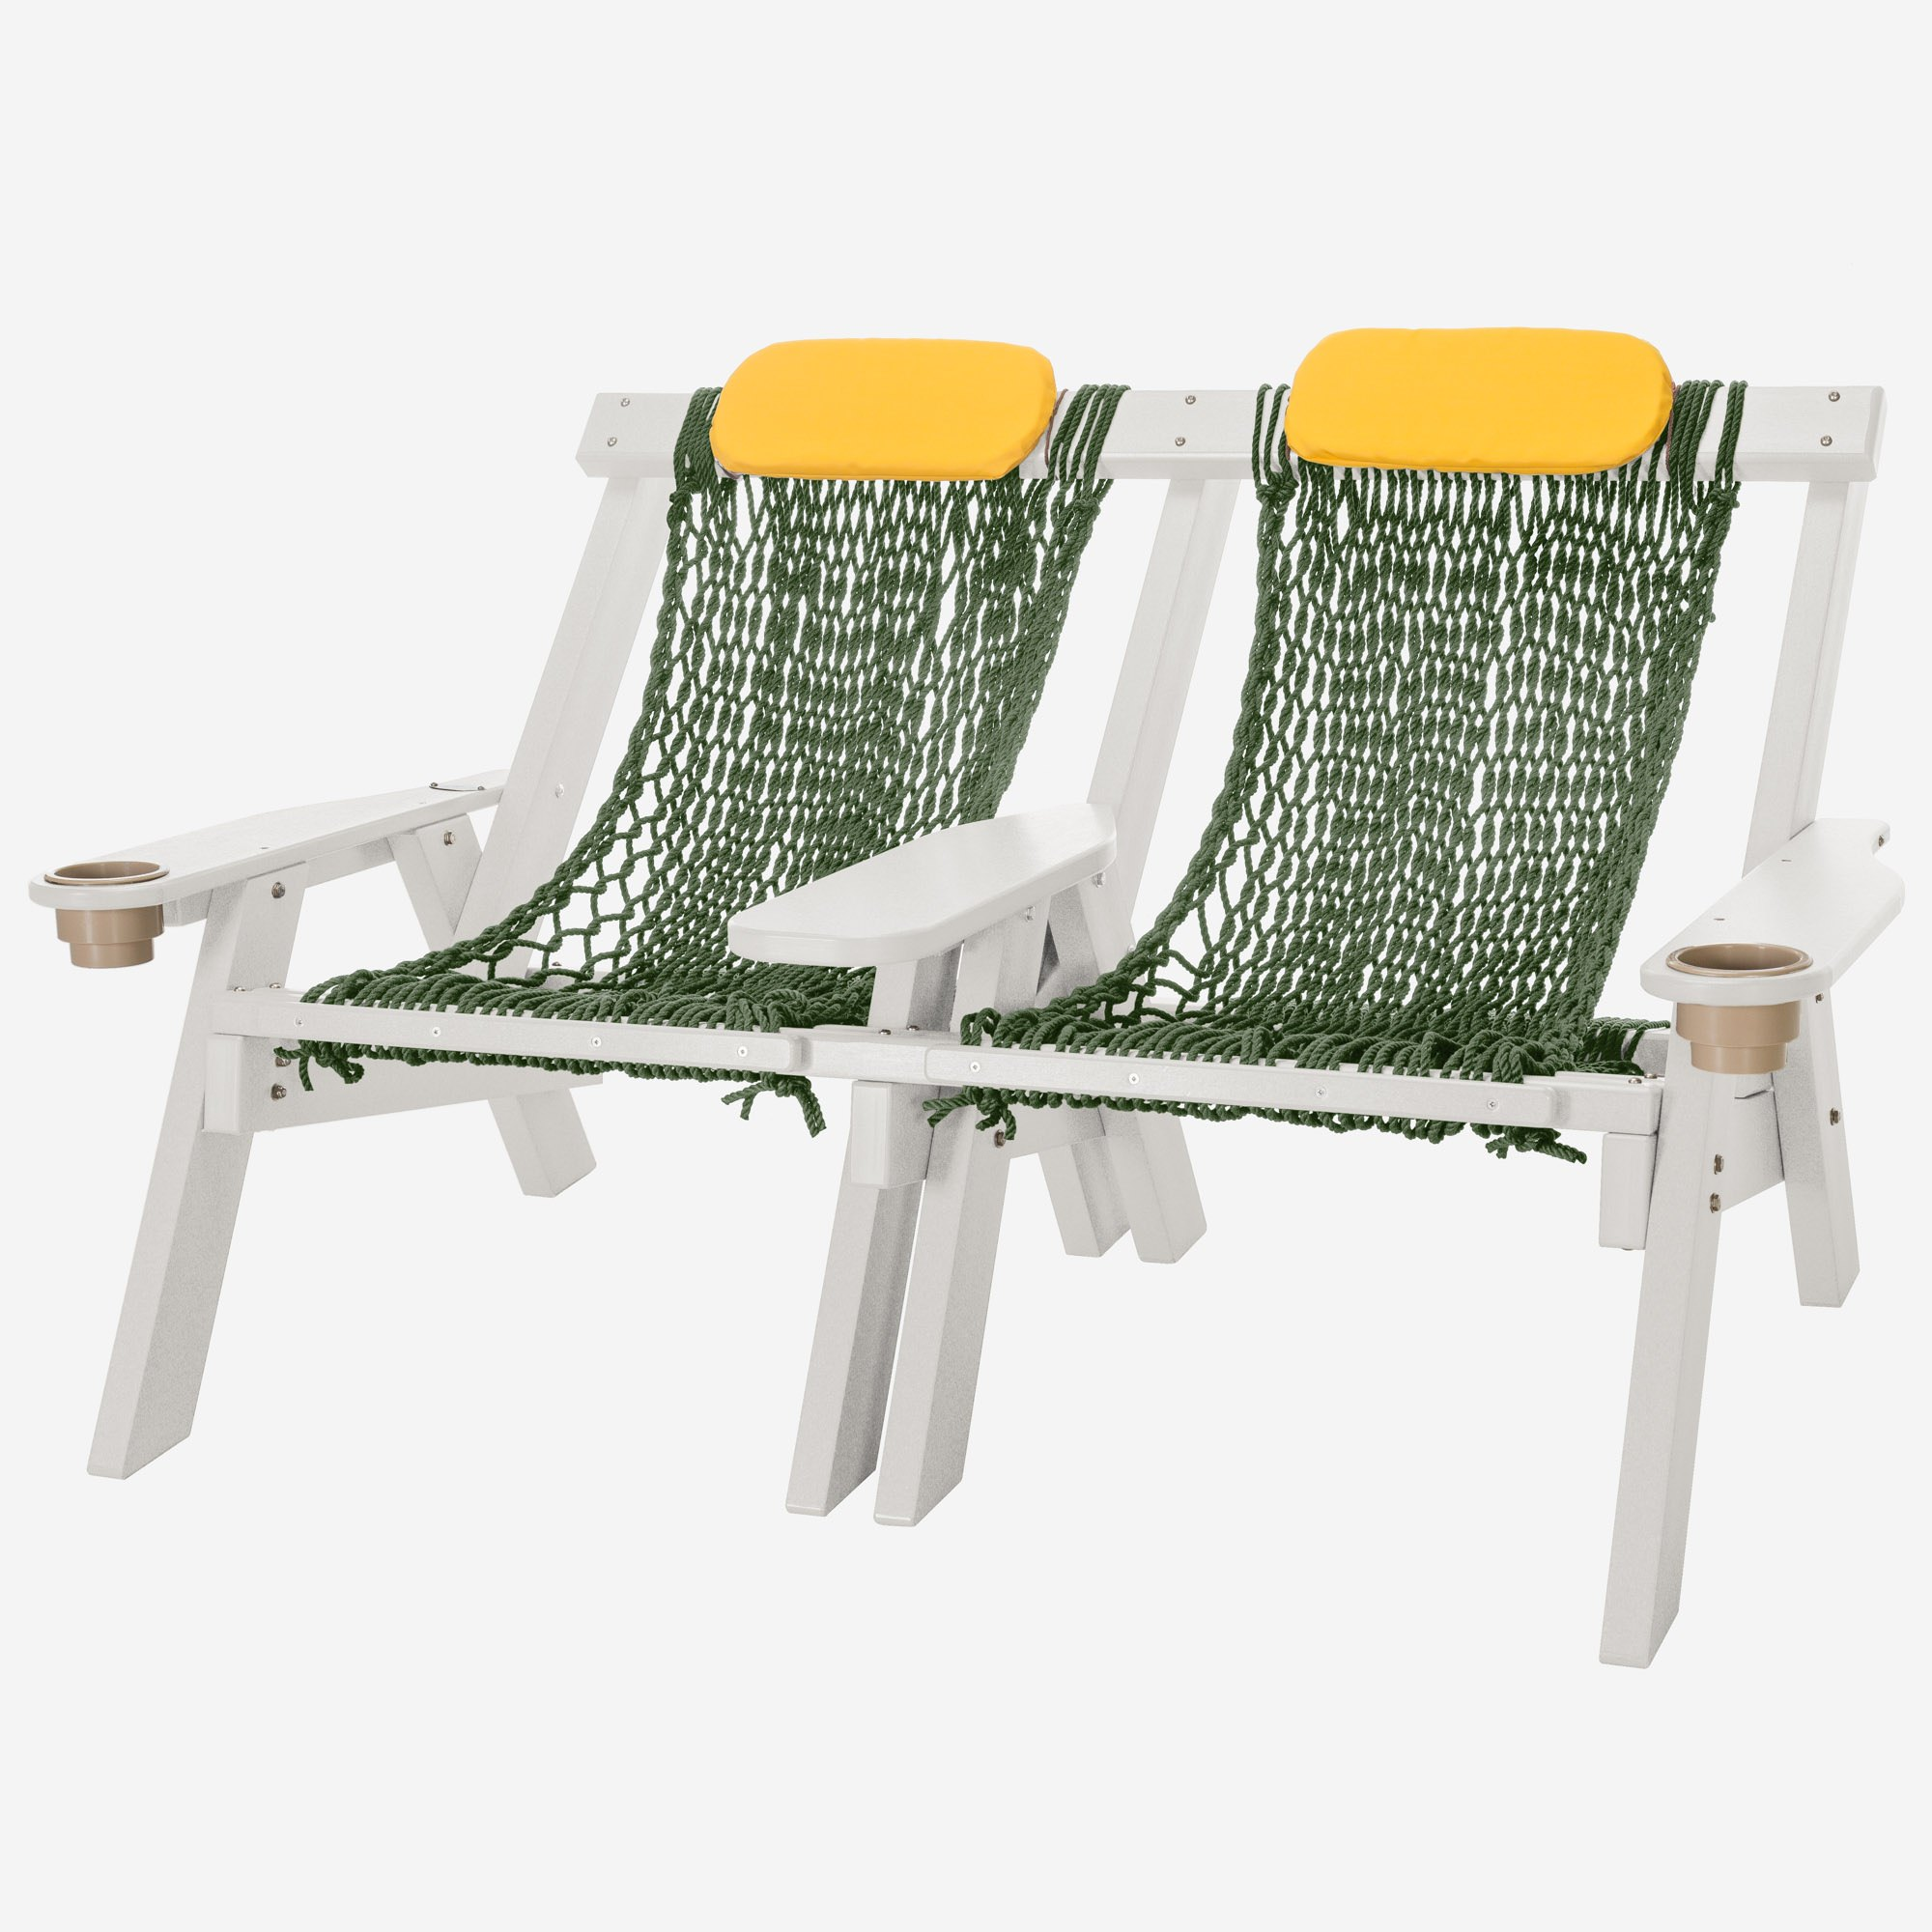 Durawood Double Rope Chair